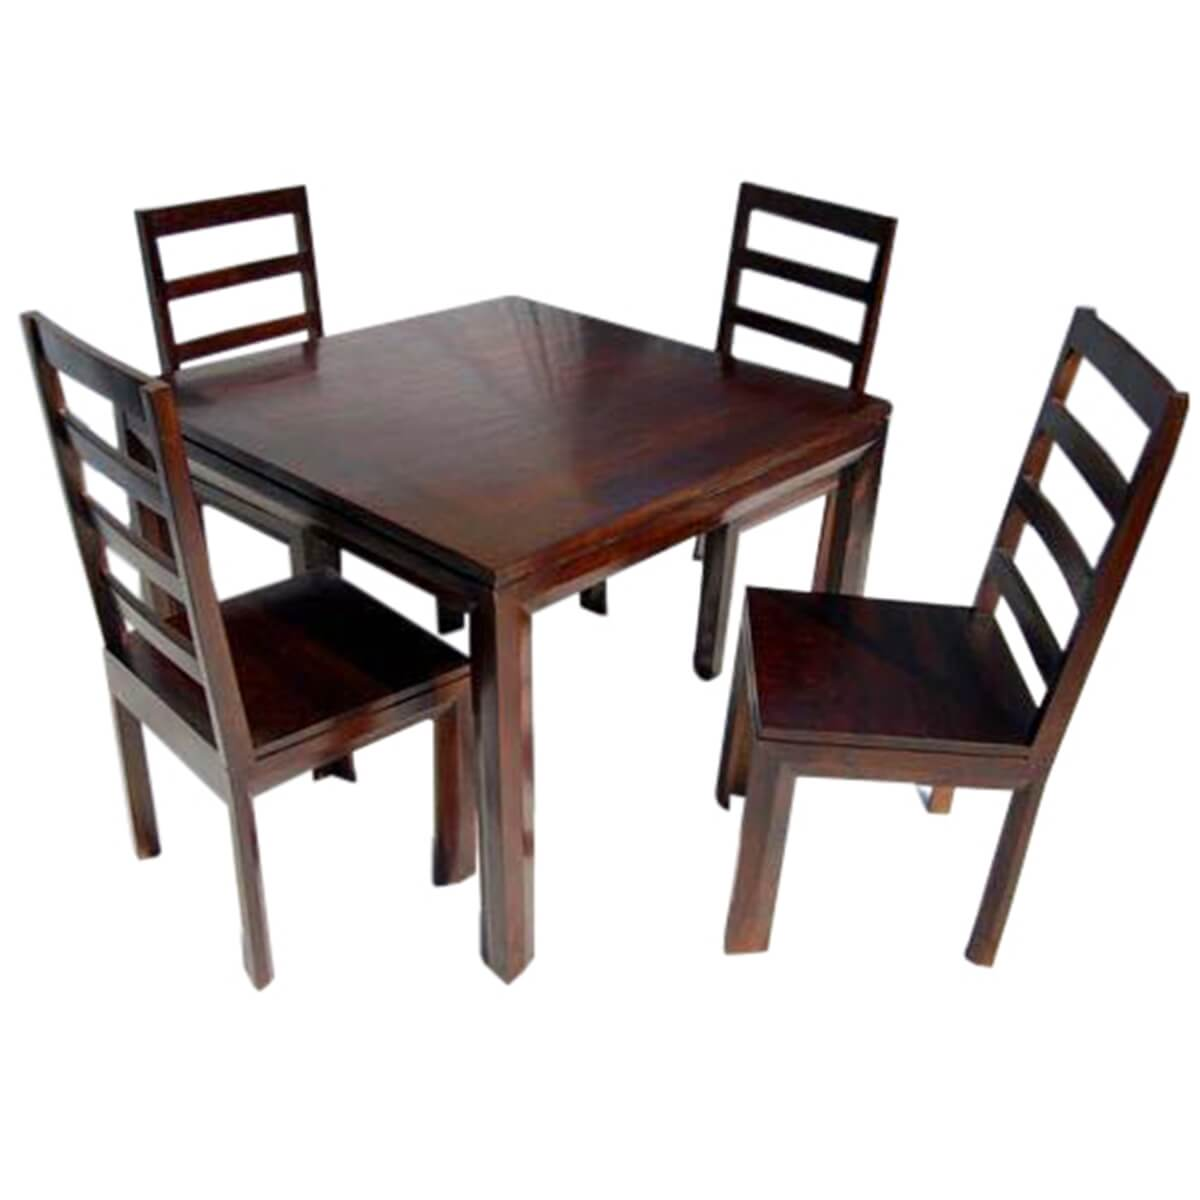 Unfinished Dining Room Chairs Solid Wood Transitional Dining Table And Chairs Set